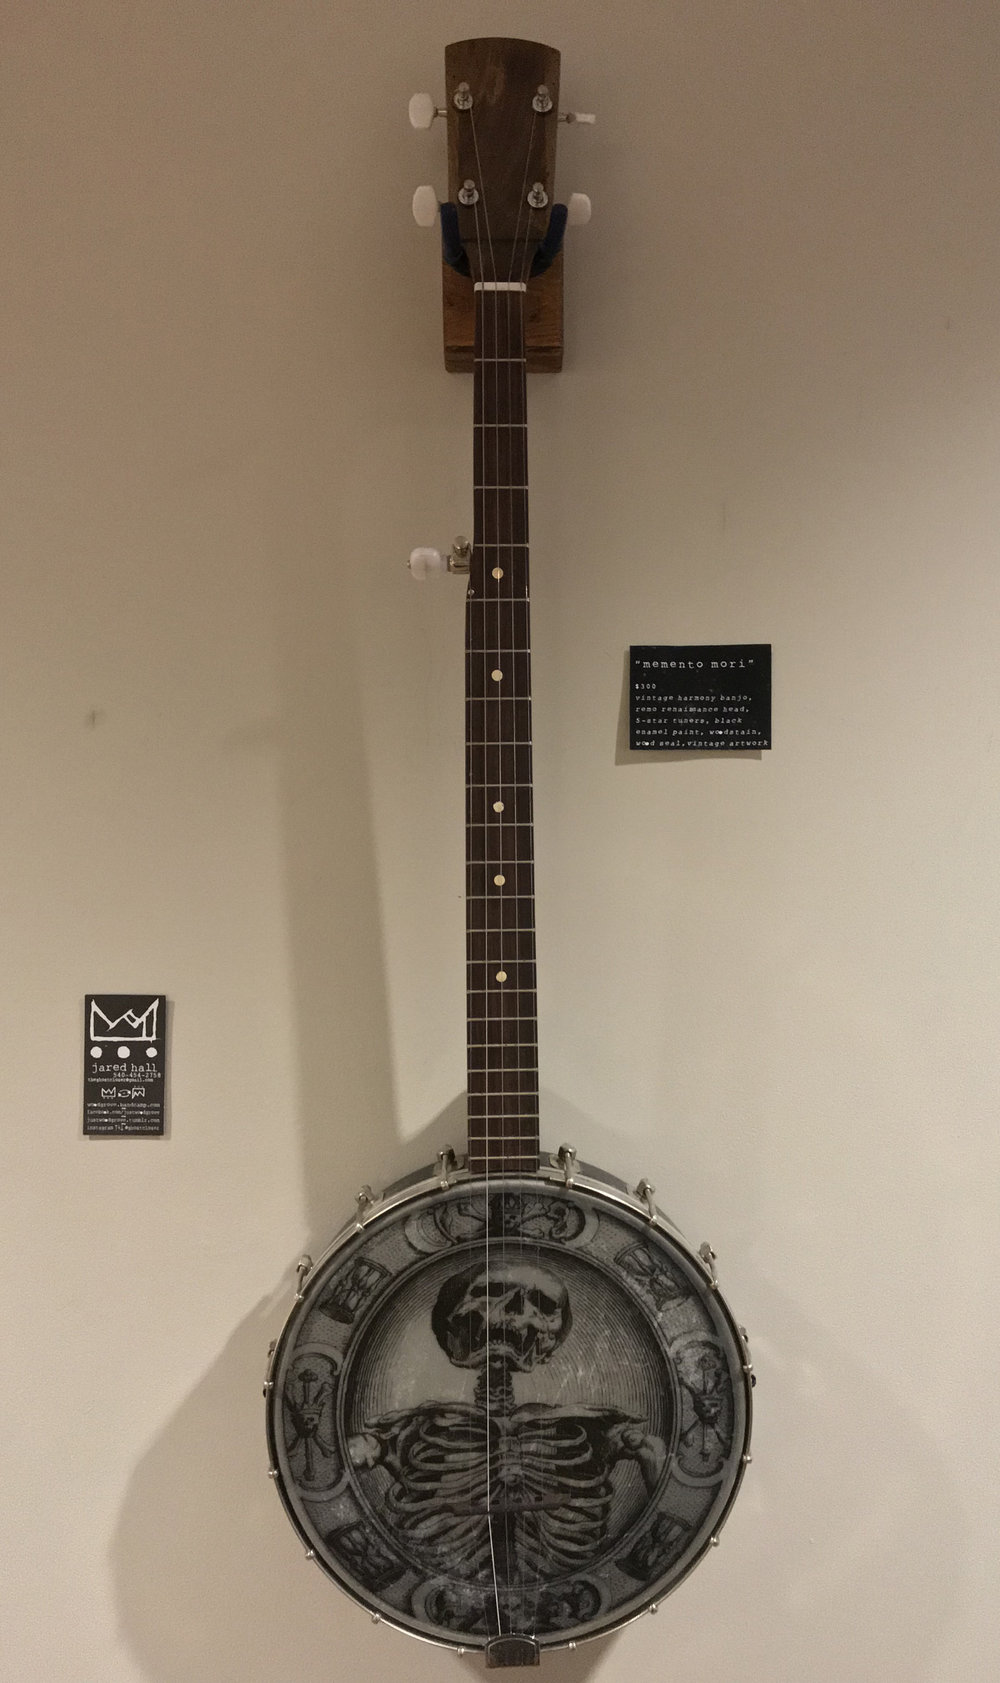 Memento Mori   $350 - SOLD vintage harmony banjo, remo renaissance head, 5-star tuners, black  enamel paint, woodstain, wood seal,vintage artwork